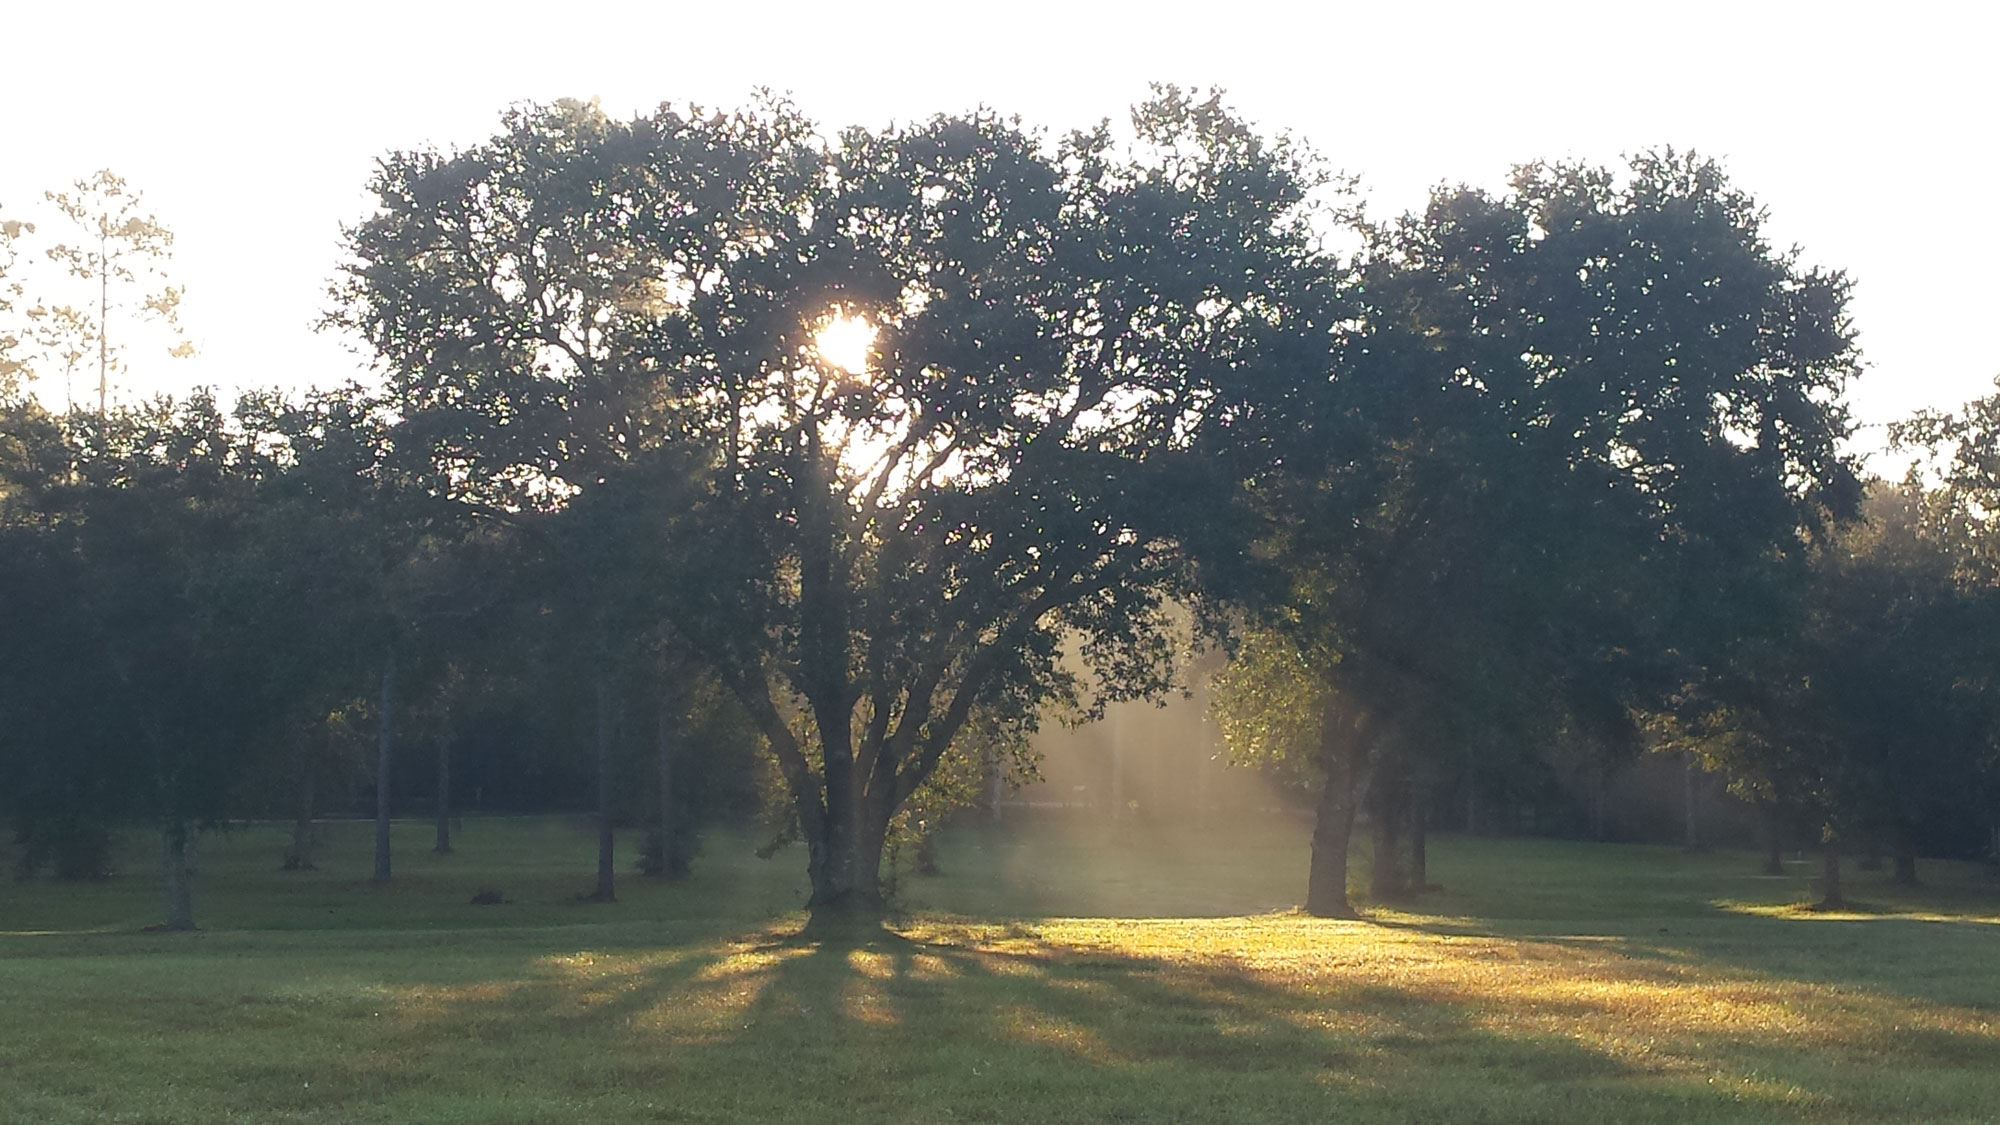 tall oak trees in a field spreading their leaves in worship to God